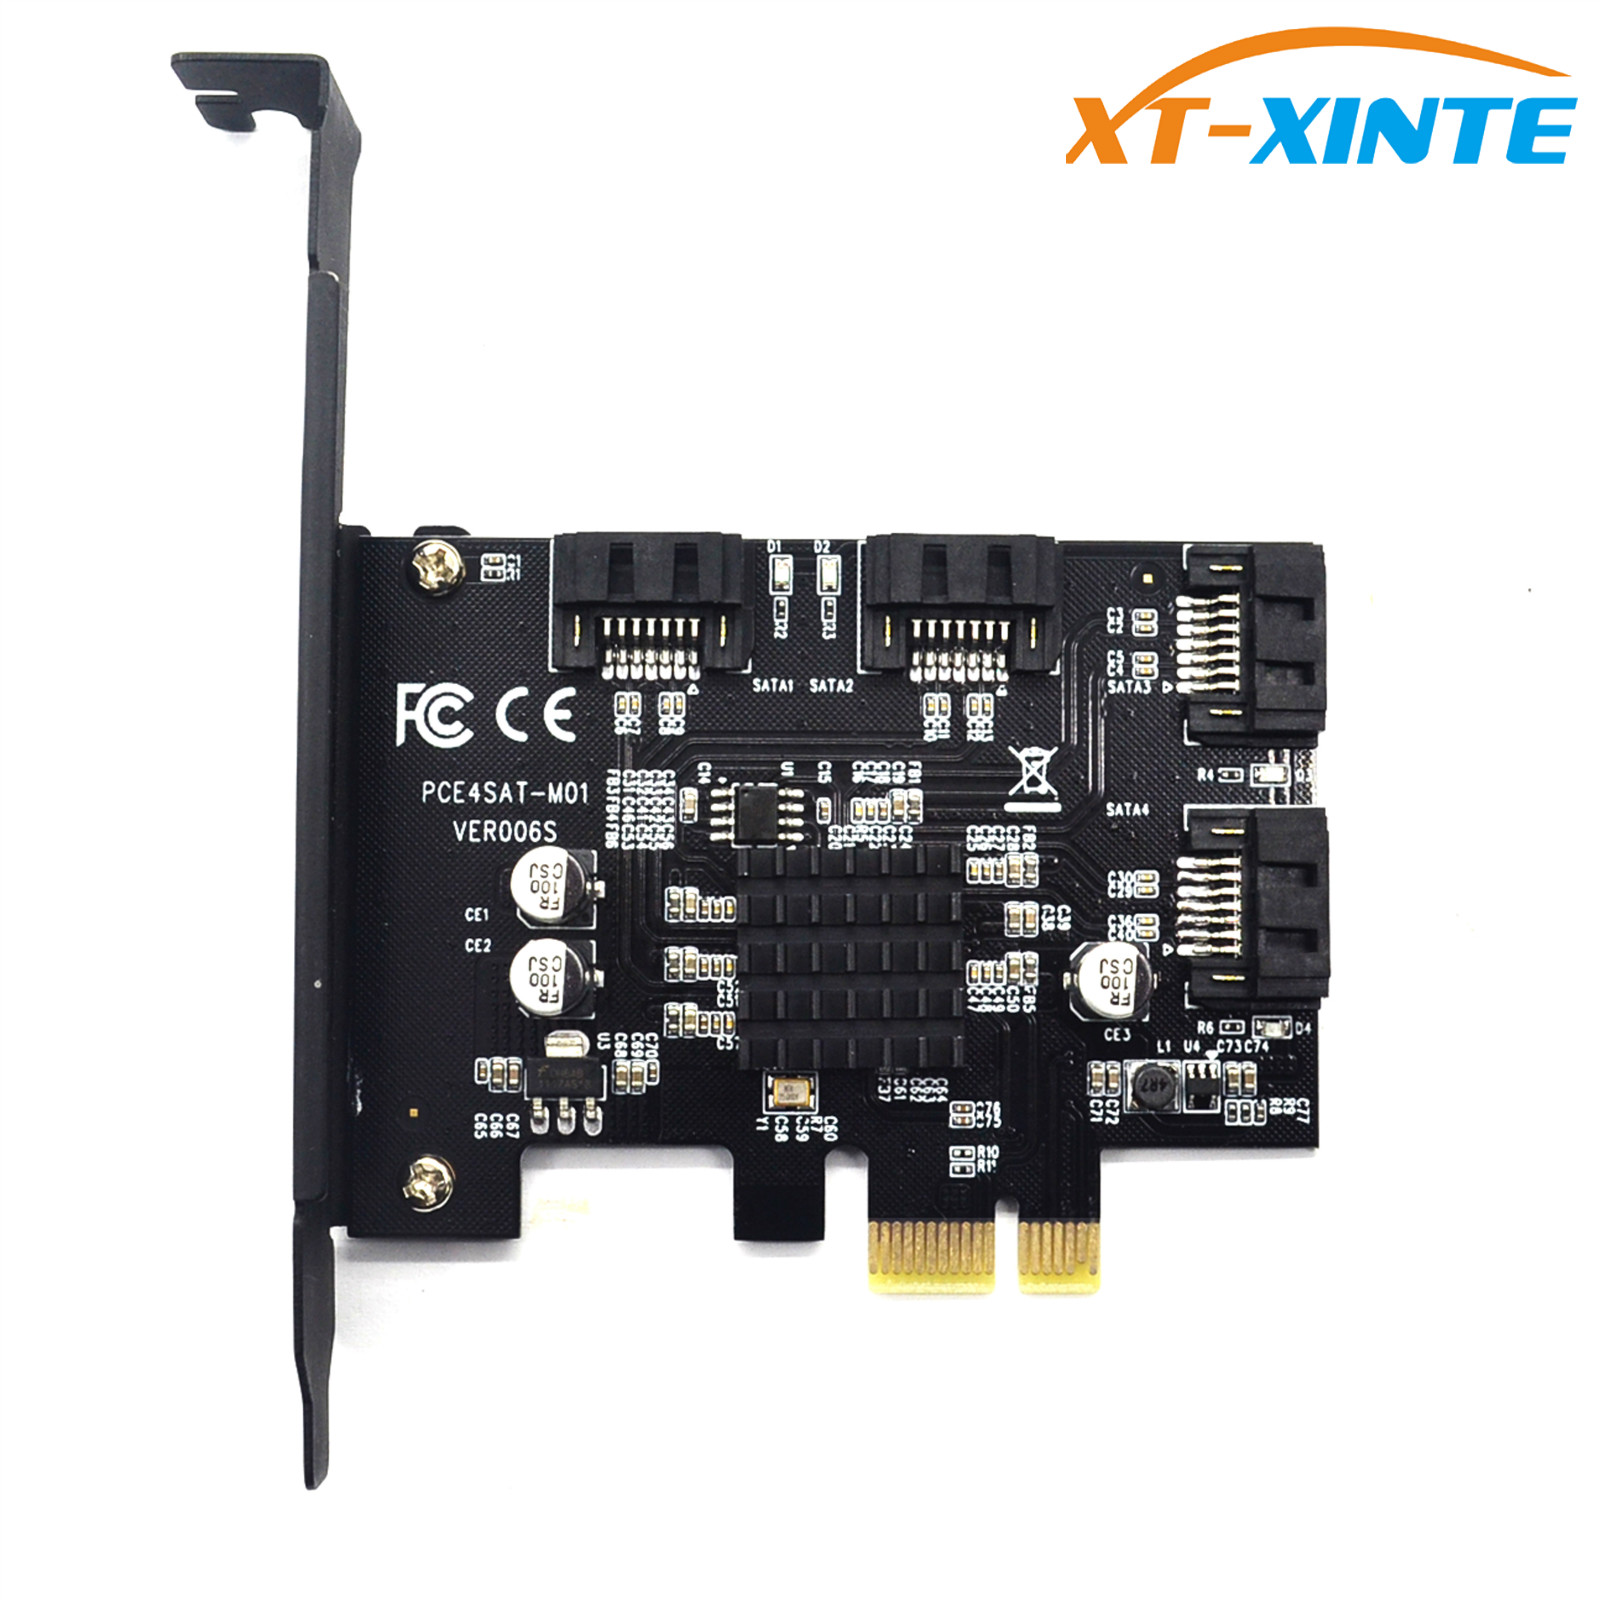 все цены на PCI-e to SATA 3.0 4 Ports 6G Expansion Controller Card PCIE SATAIII 3.0 Converter Adapter Bracket for HDD SSD Marvell 88SE9215 онлайн